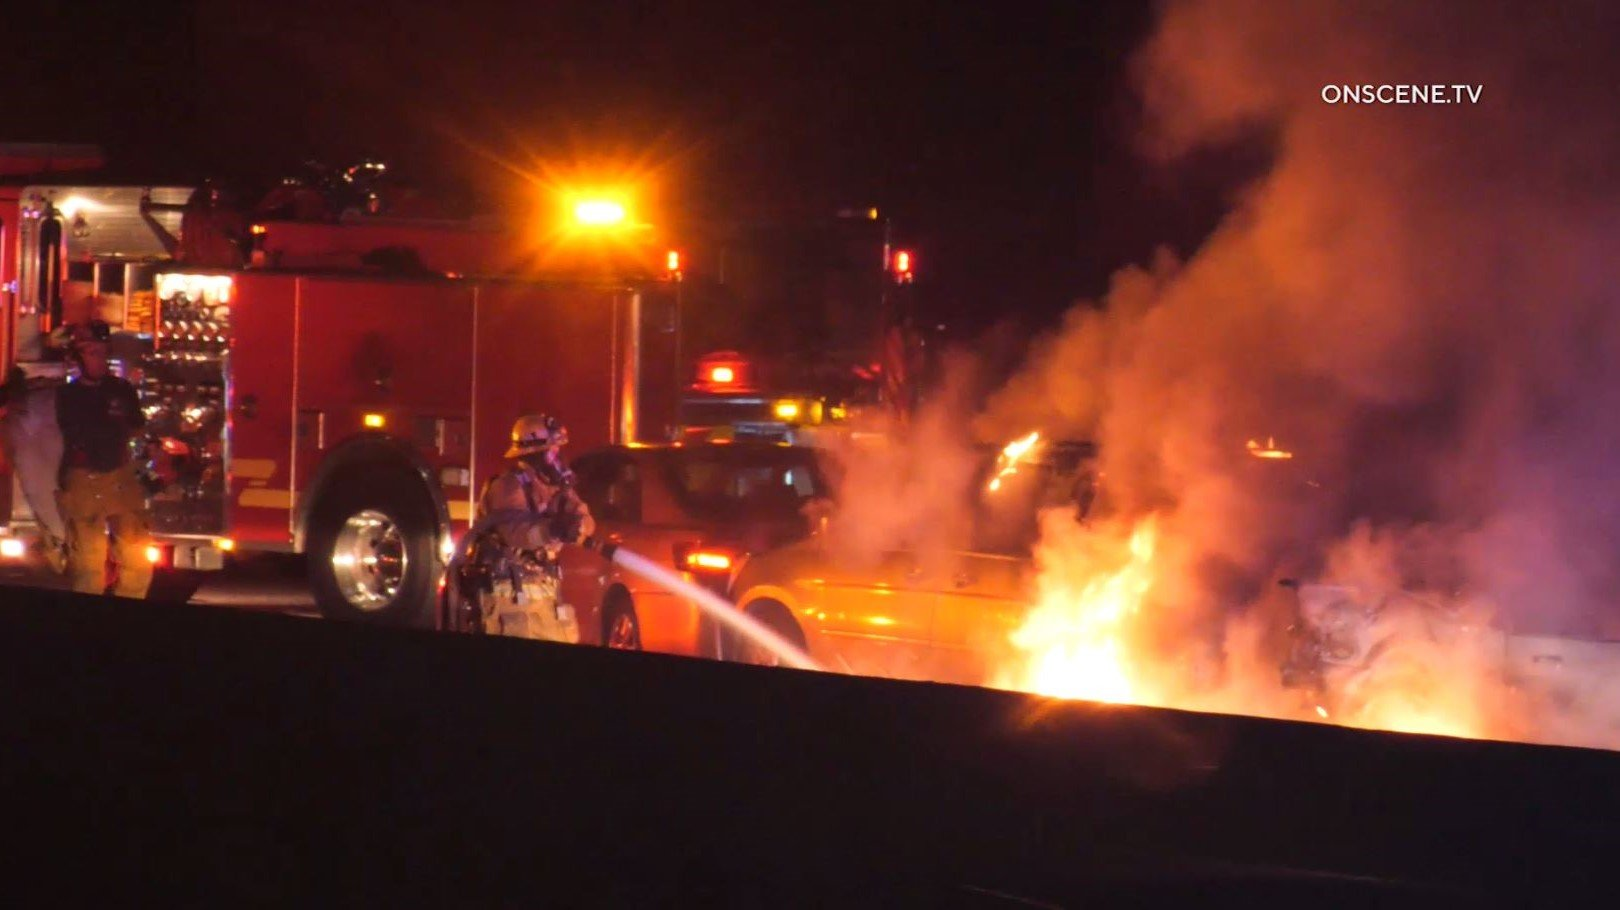 A person was killed in a fiery three-vehicle collision on the 60 Freeway in Industry on Jan. 9, 2020. (Credit: OnScene)